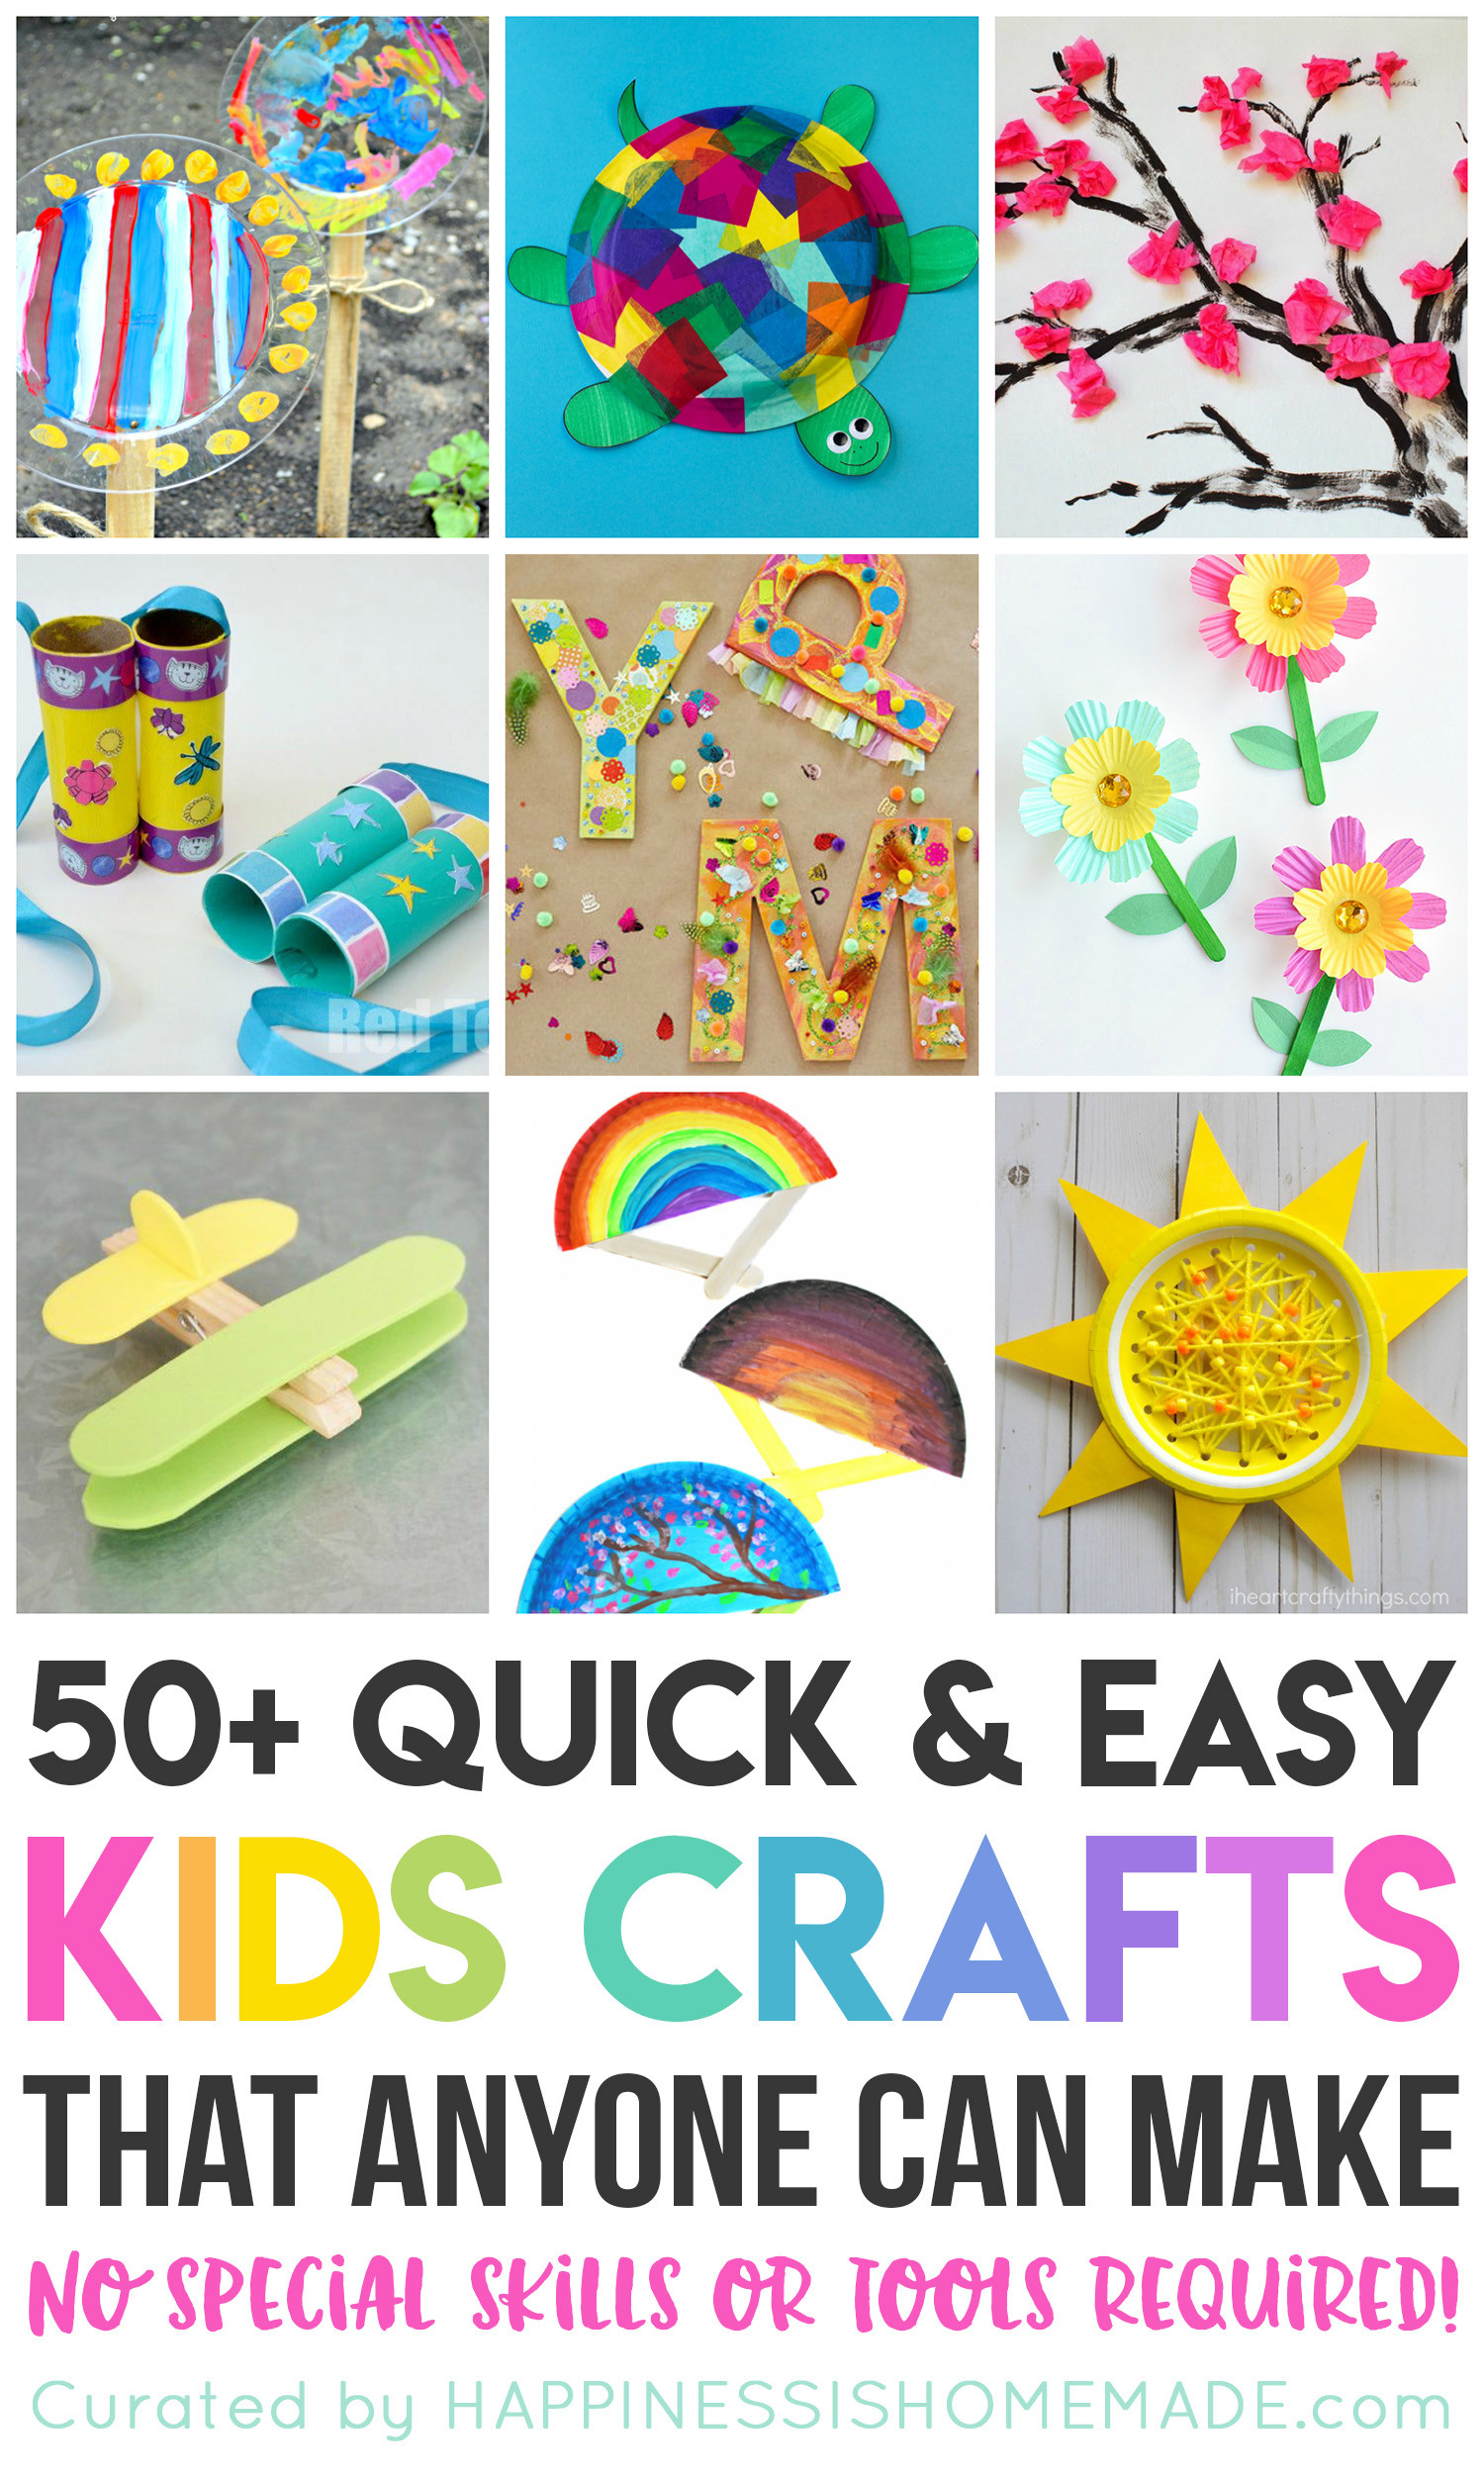 Best ideas about Simple Crafts For Kids . Save or Pin Easy Fall Kids Crafts That Anyone Can Make Happiness is Now.